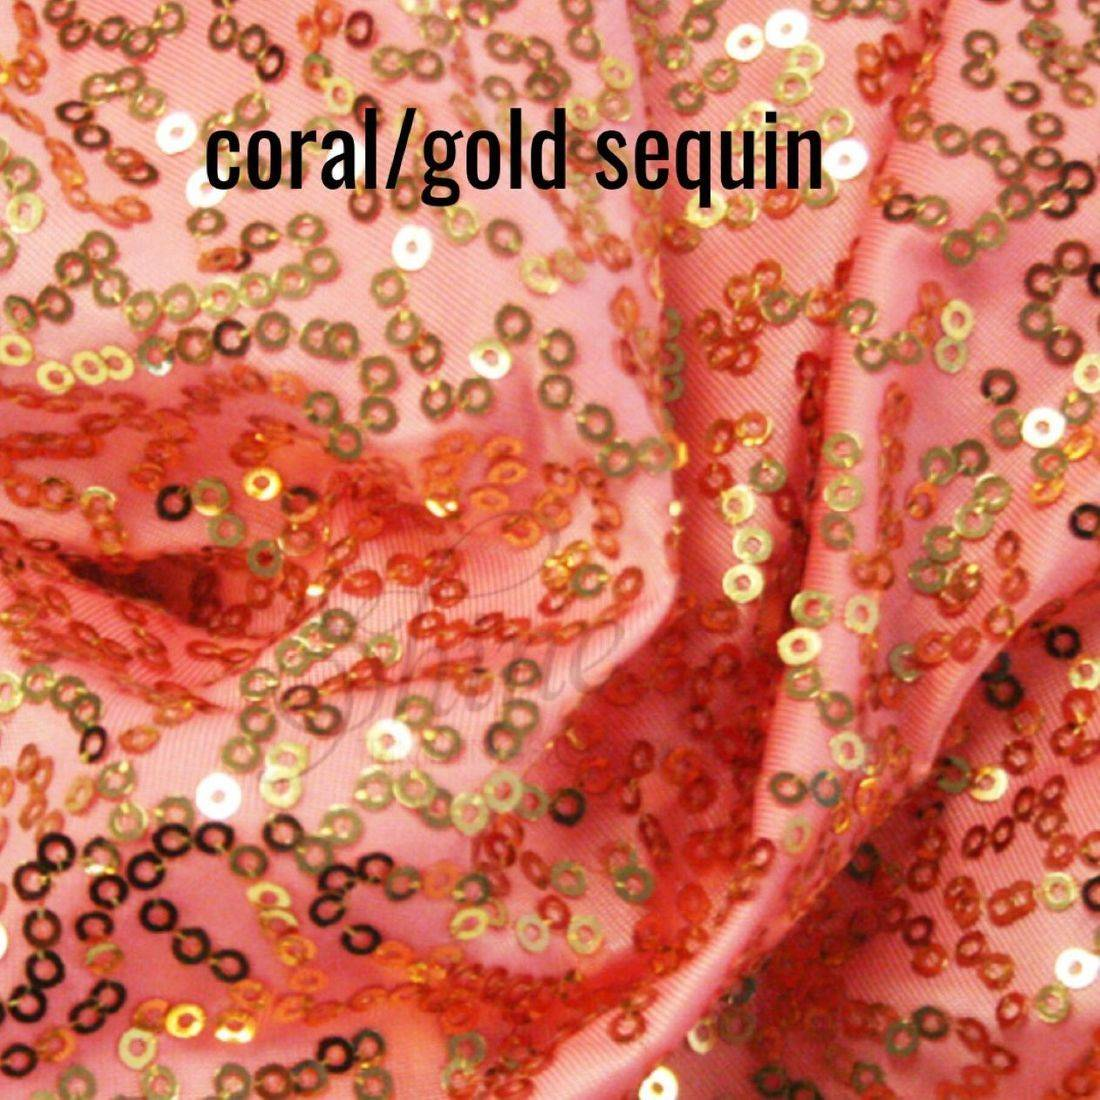 Coral/gold sequin